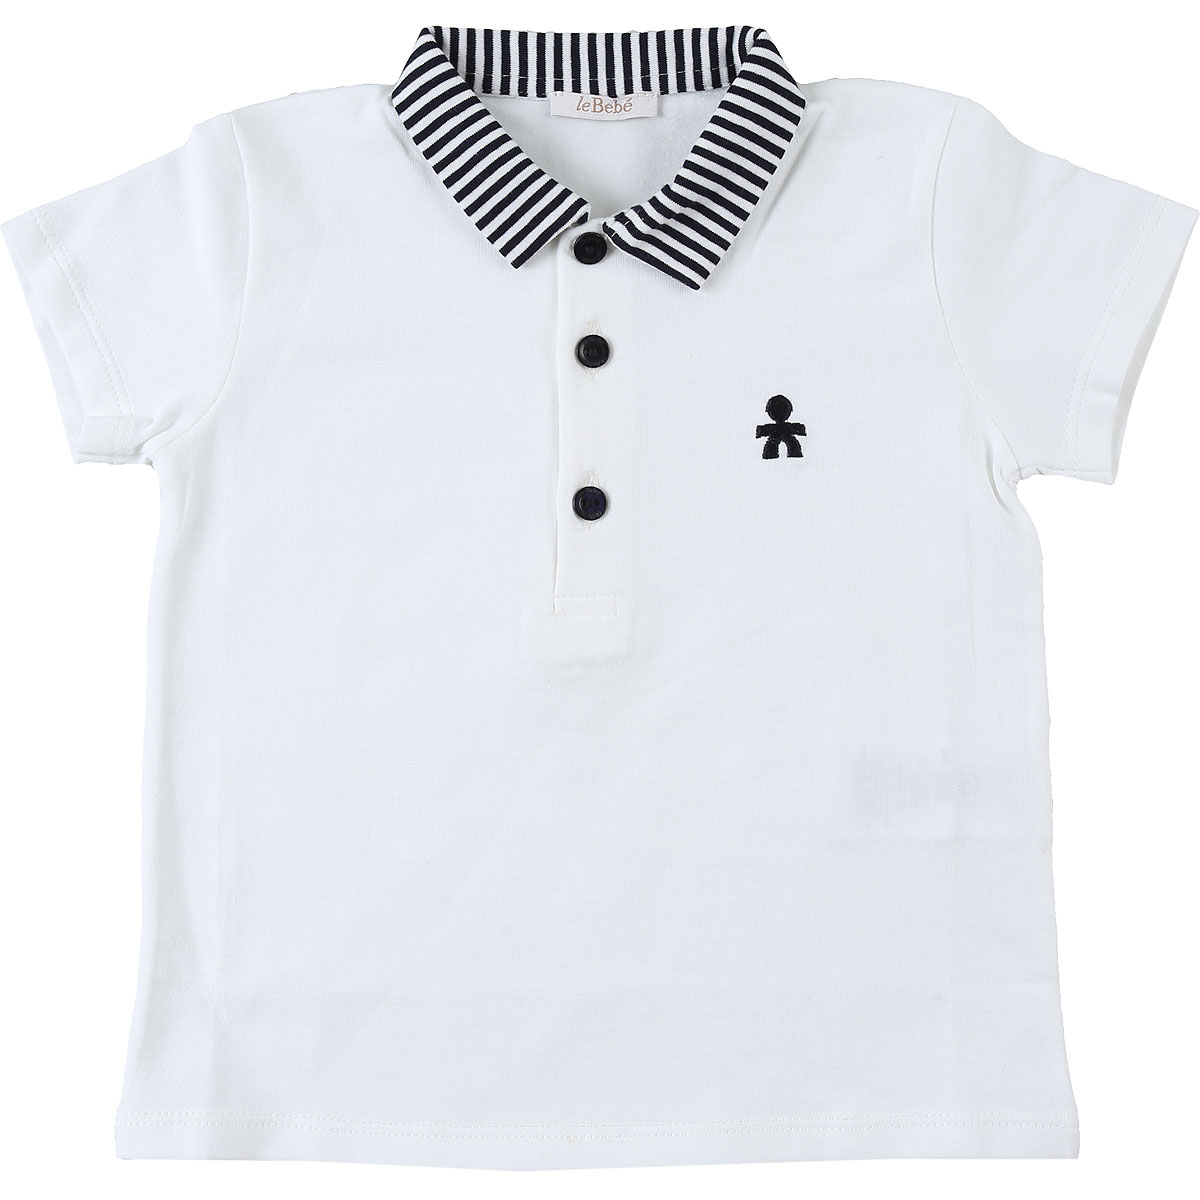 Le Bebe Baby Polo Shirt for Boys, White, Cotton, 2019, 12M 18M 3M 6M 9M